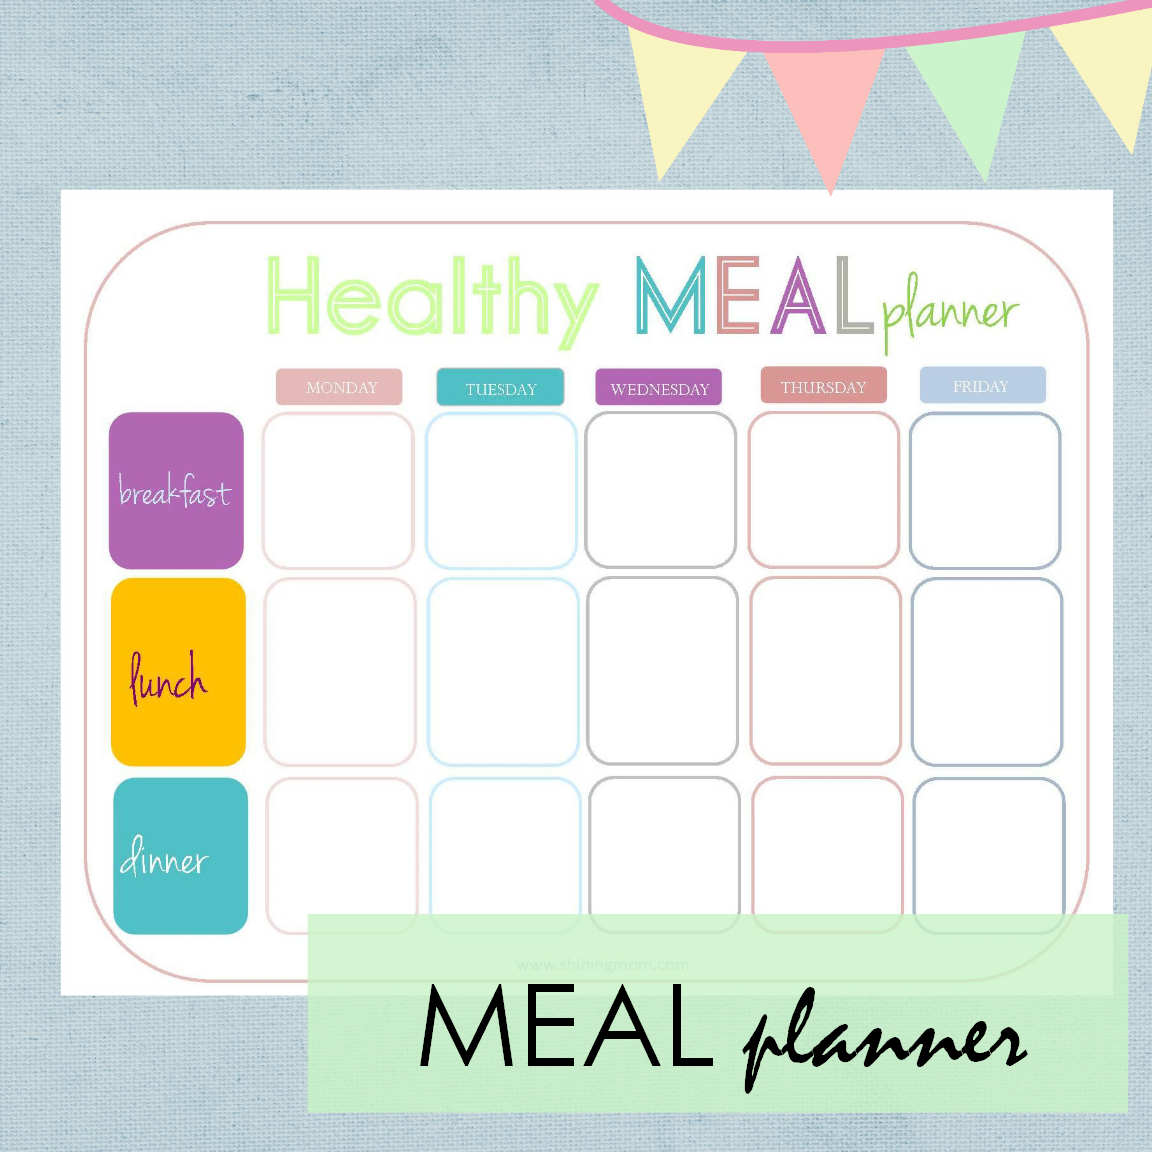 your weak meal ahead! Include your kids in the mealplanning activity